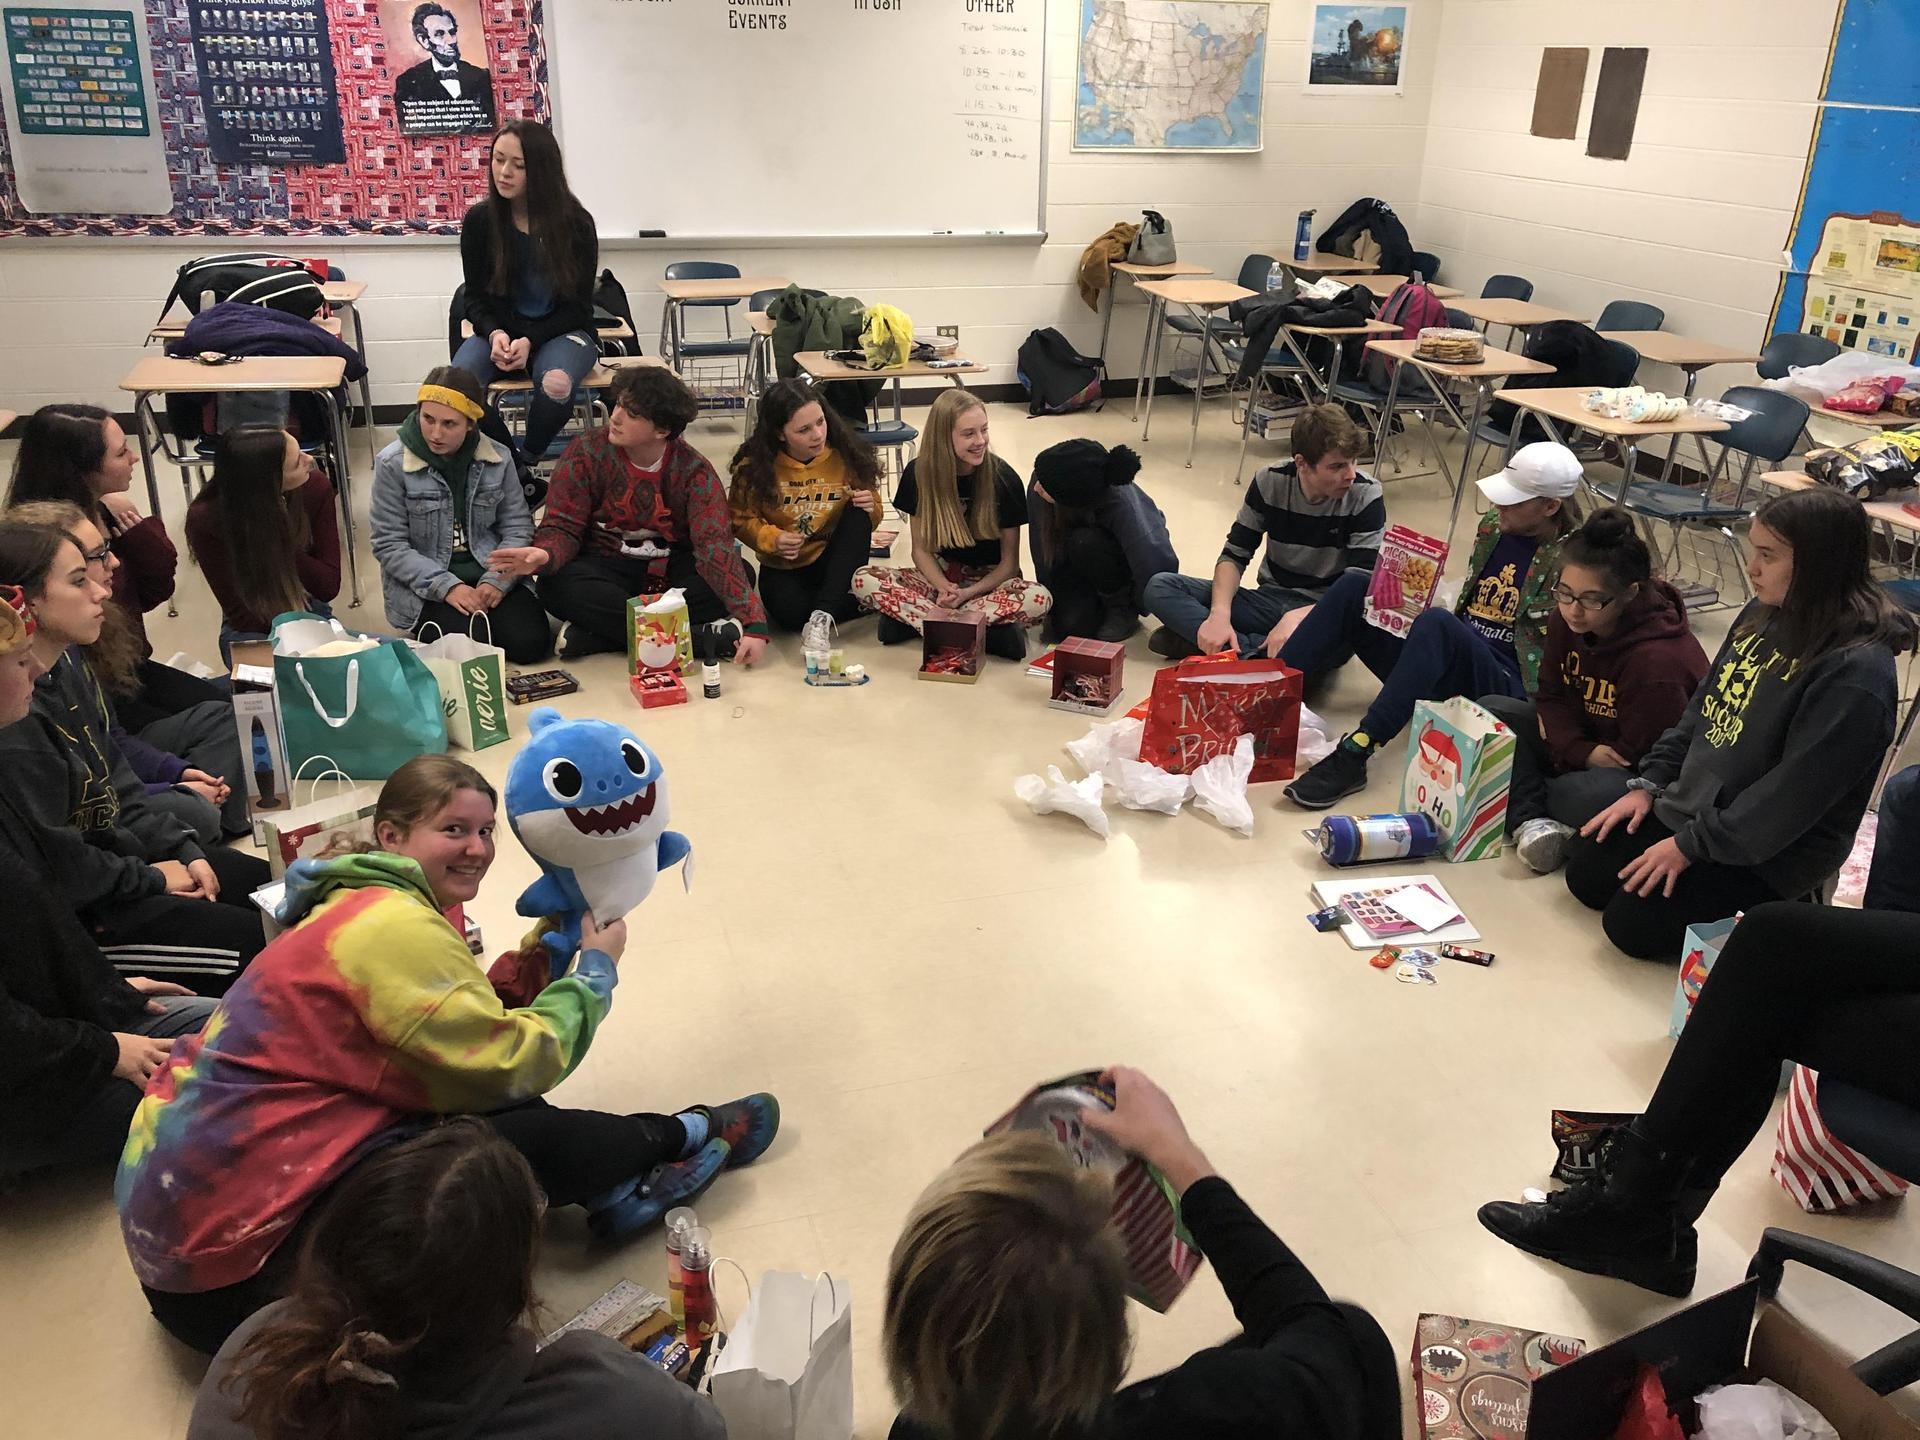 Students in a circle exchanging gifts.